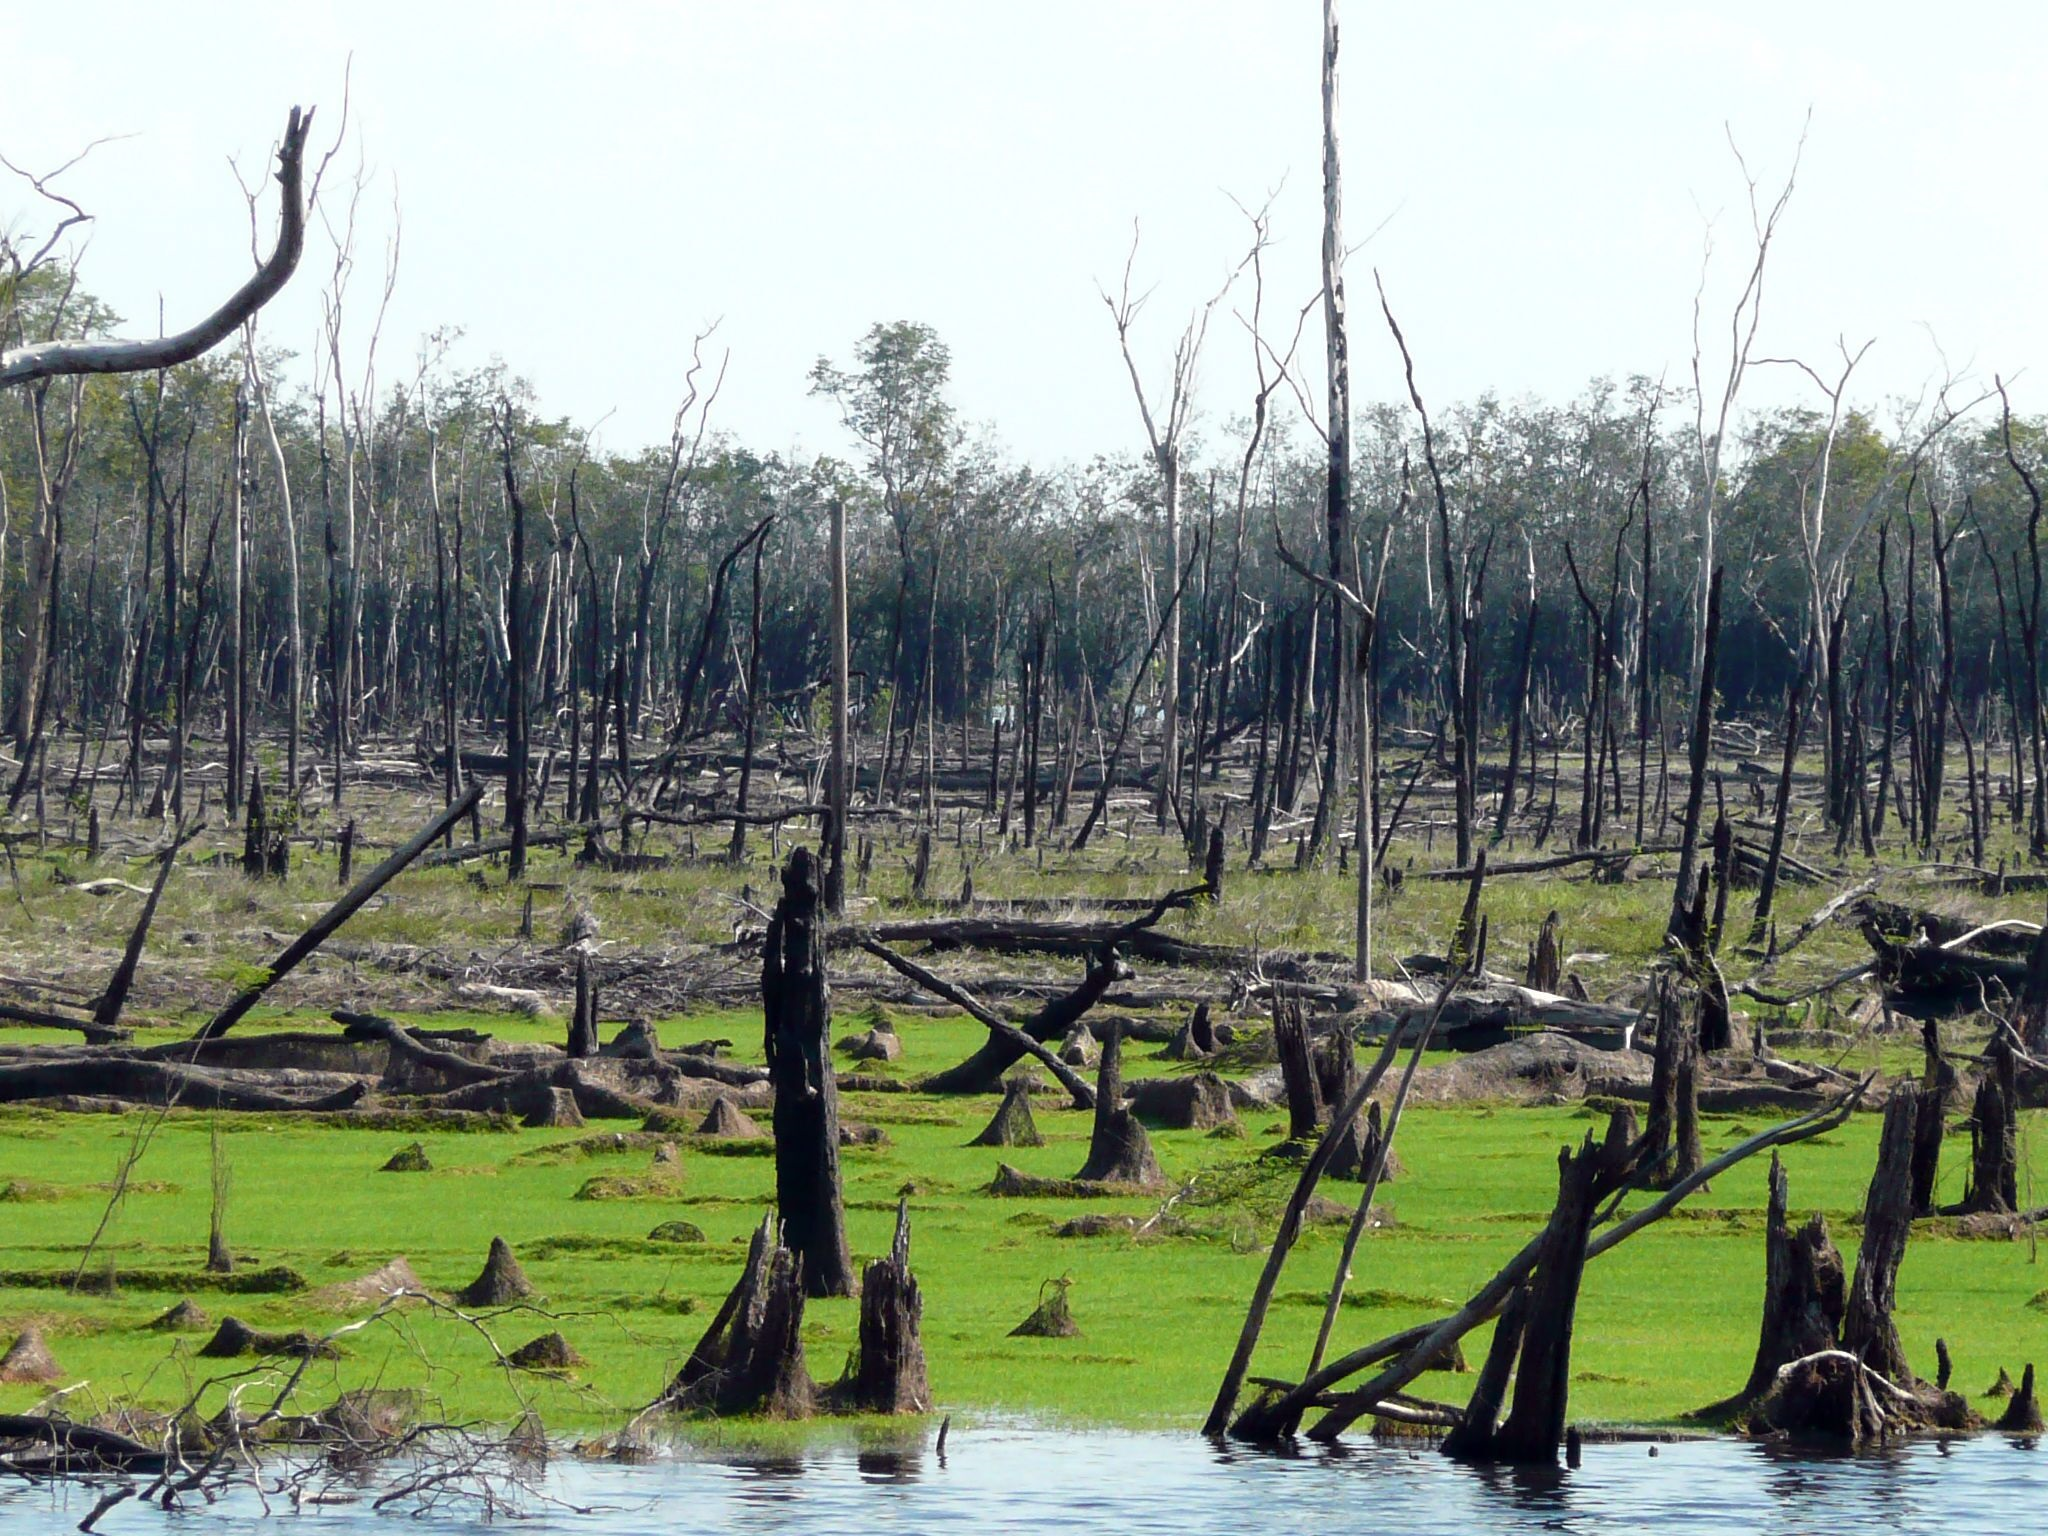 Although it may seem counter-intuitive, new research shows that the floodplains of the Amazon are actually quite prone to forest fires.